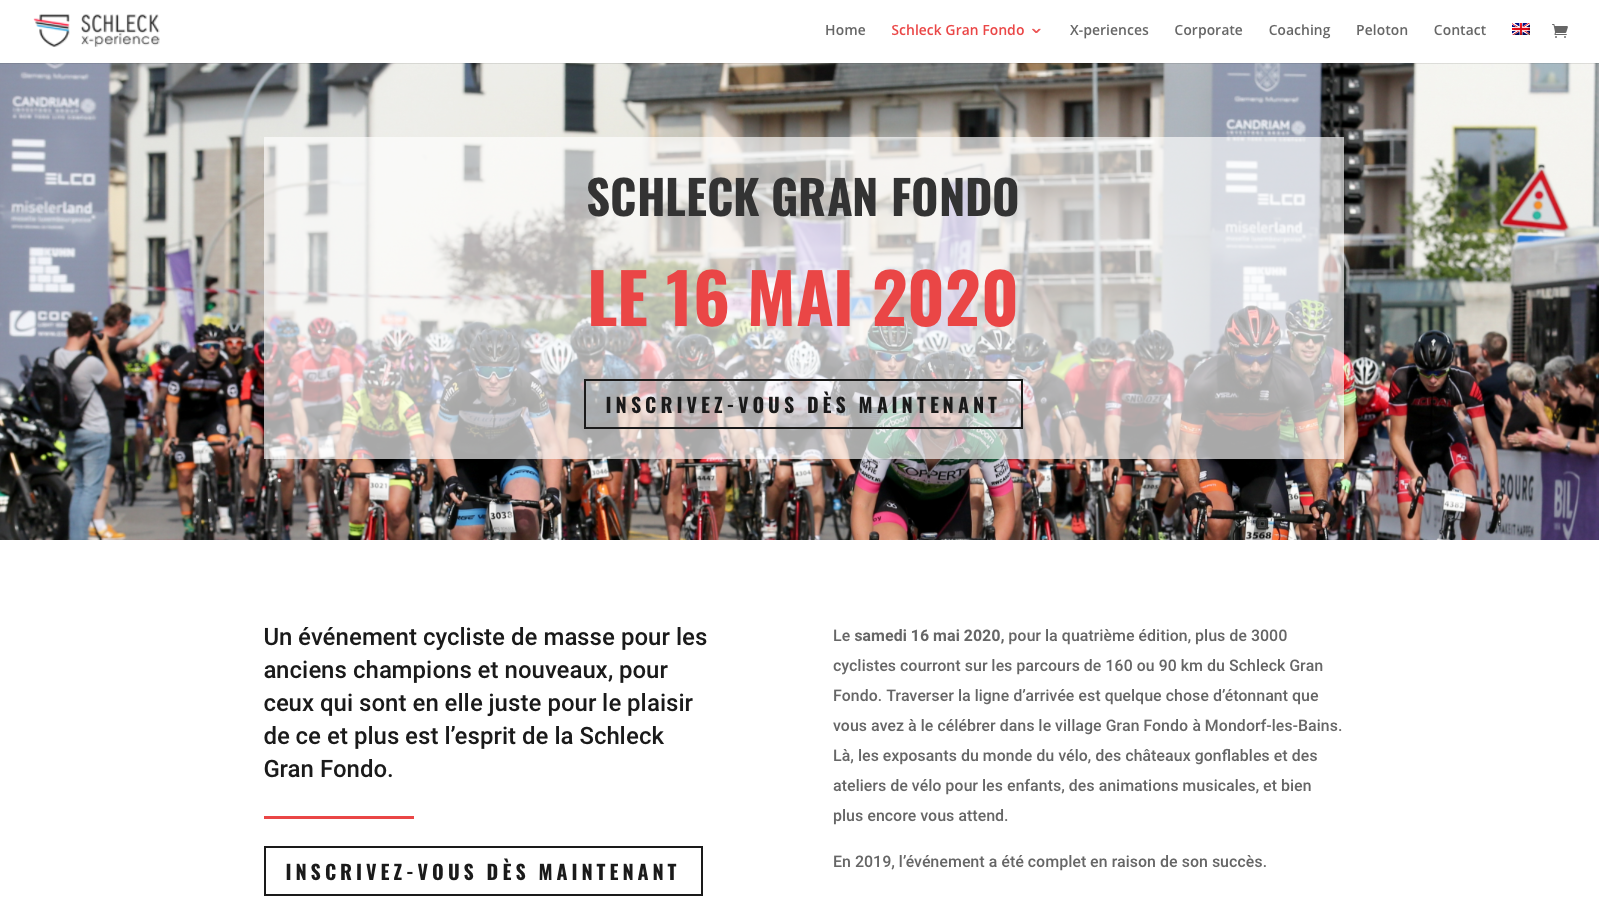 Cycling For Health soutien le Schleck Gran Fondo